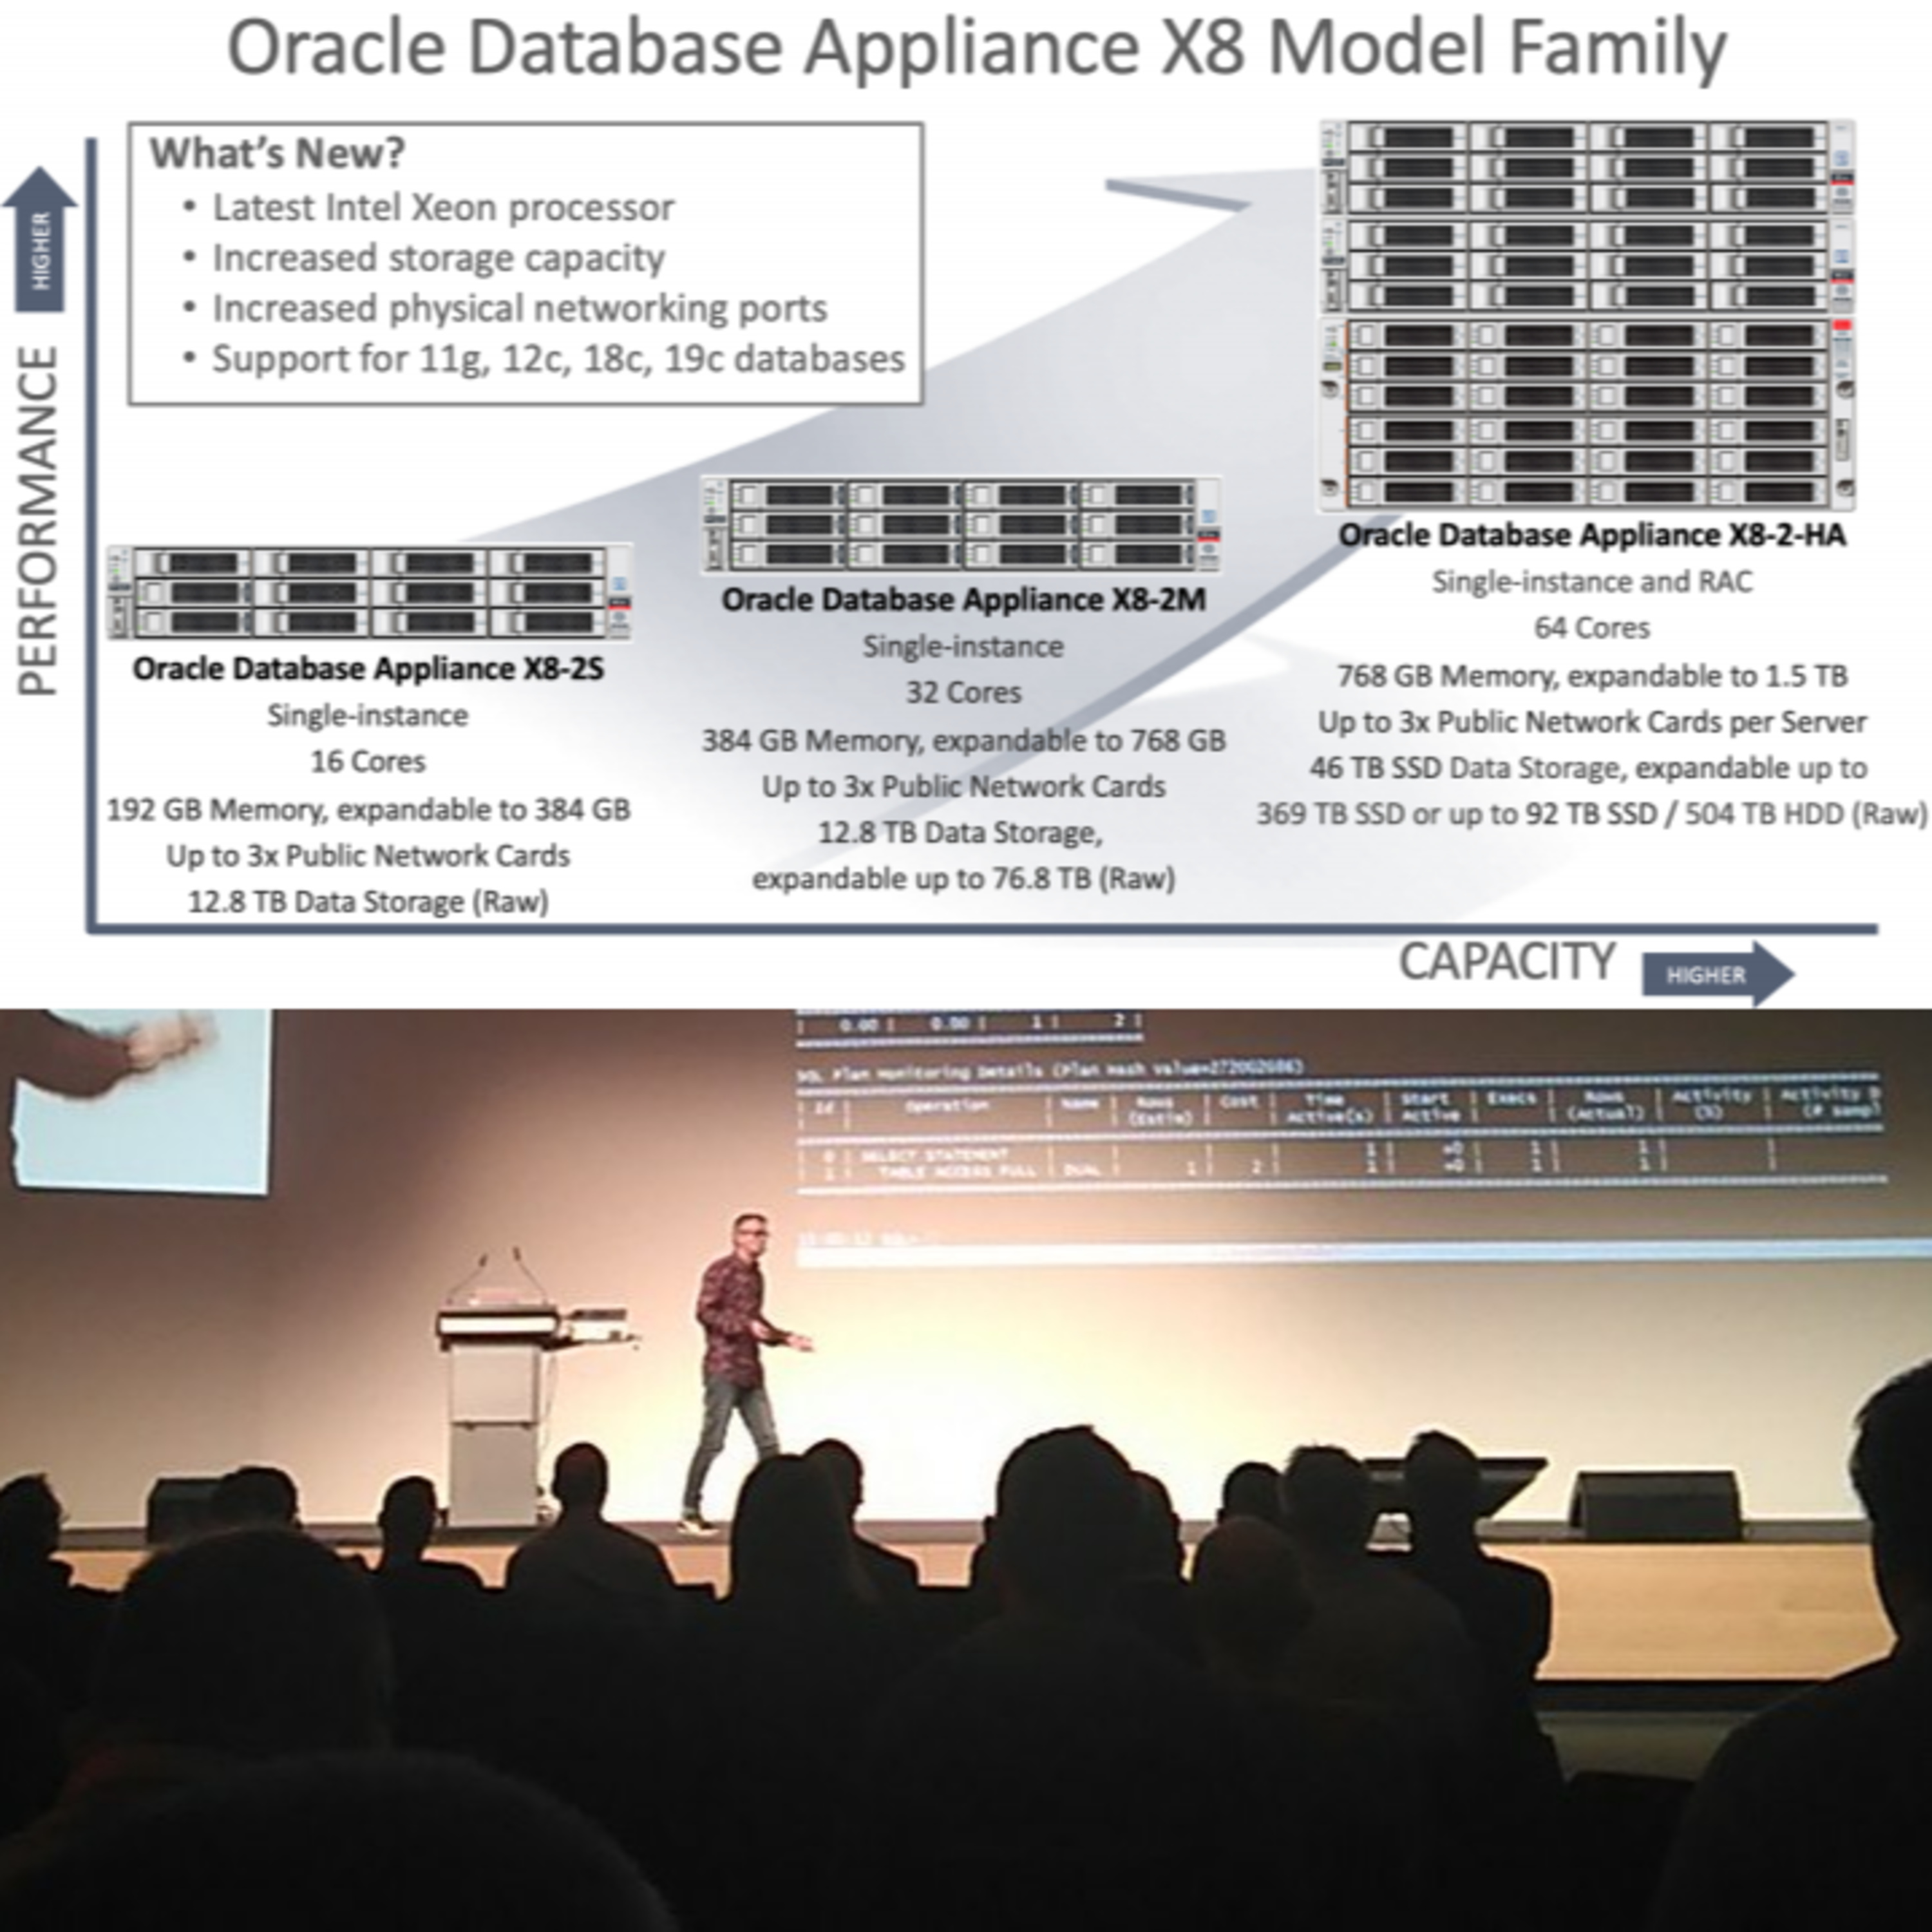 Oracle Database Appliance X8-2